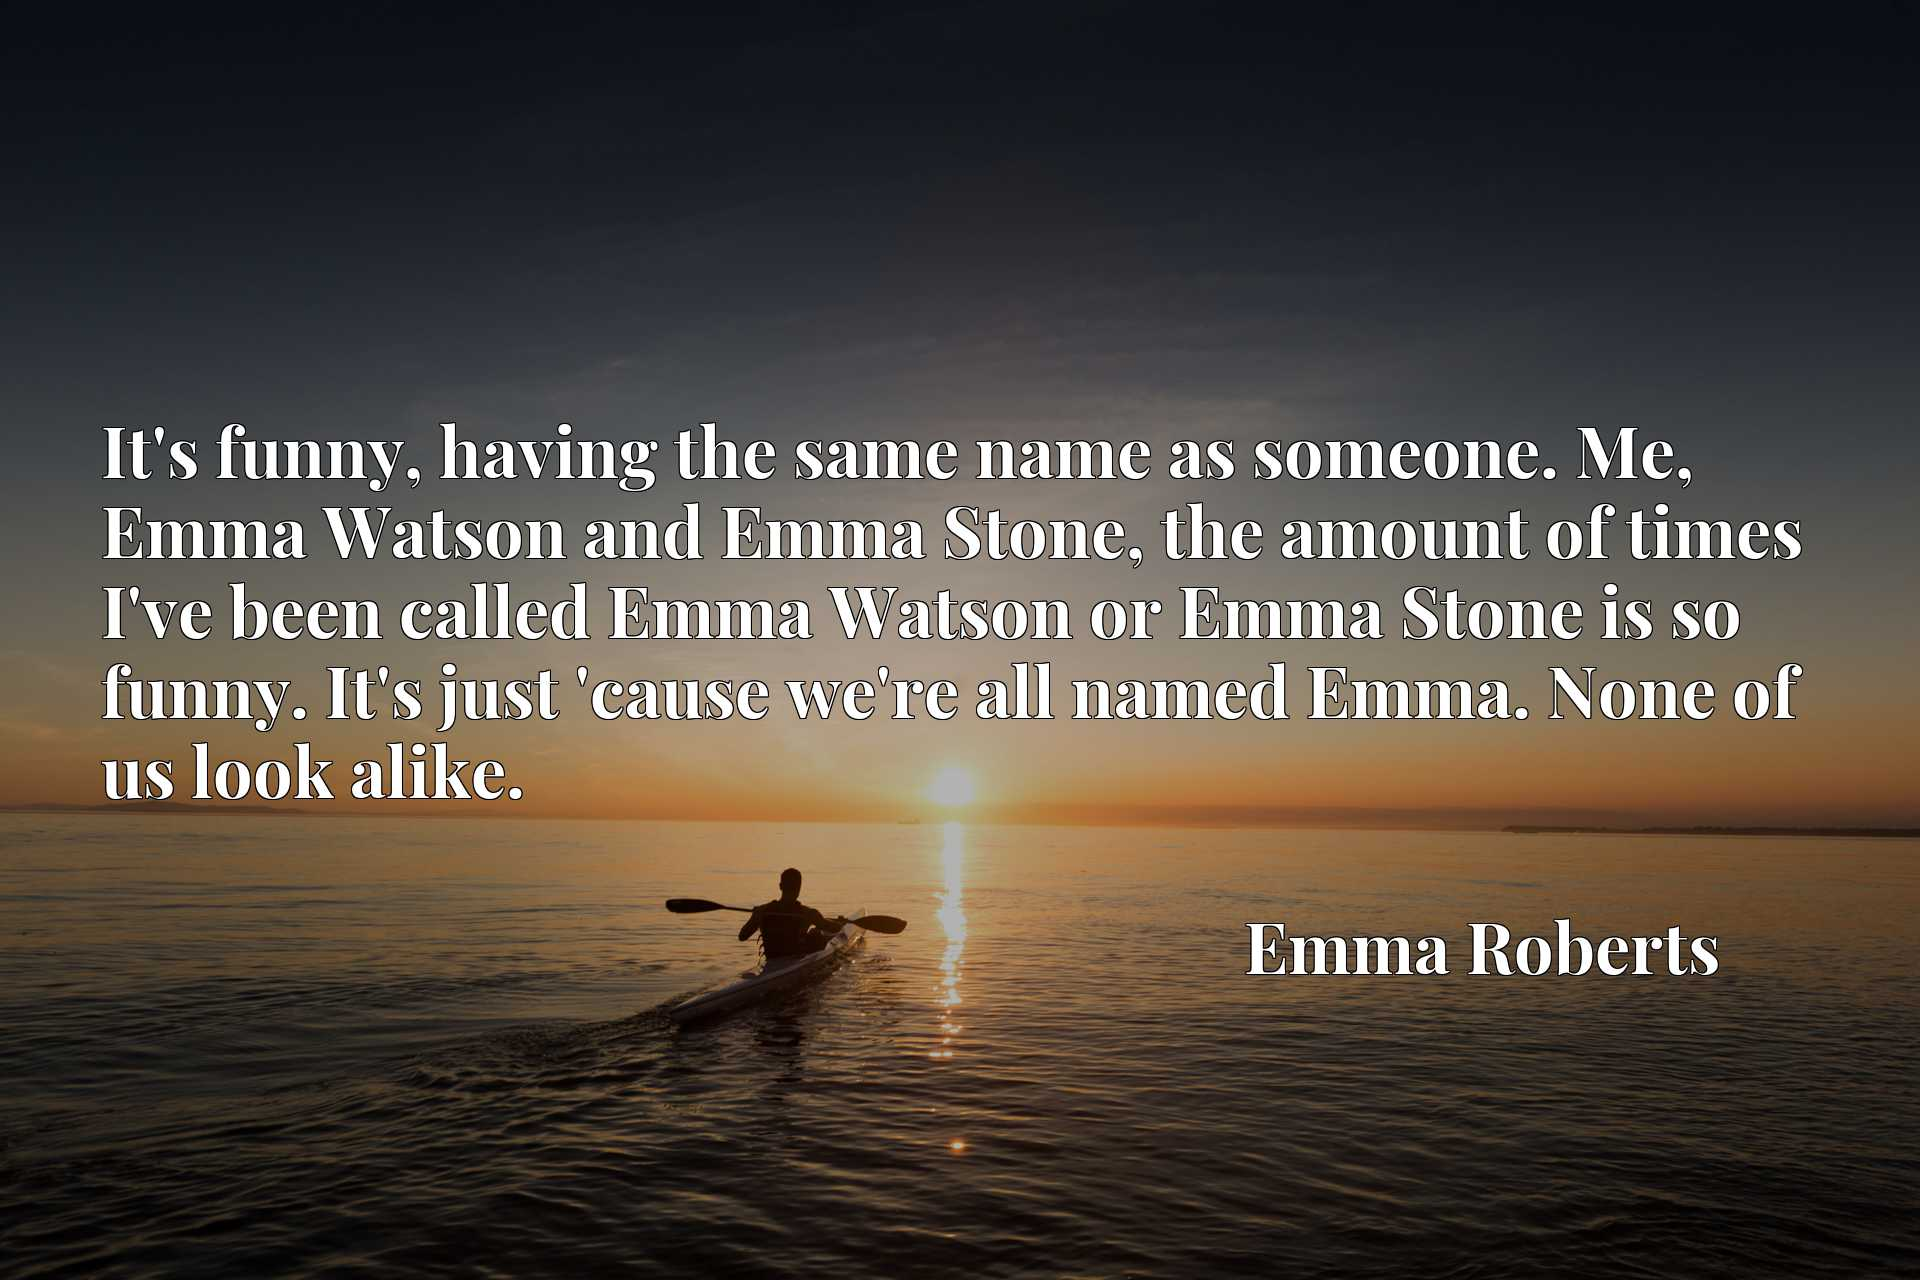 It's funny, having the same name as someone. Me, Emma Watson and Emma Stone, the amount of times I've been called Emma Watson or Emma Stone is so funny. It's just 'cause we're all named Emma. None of us look alike.